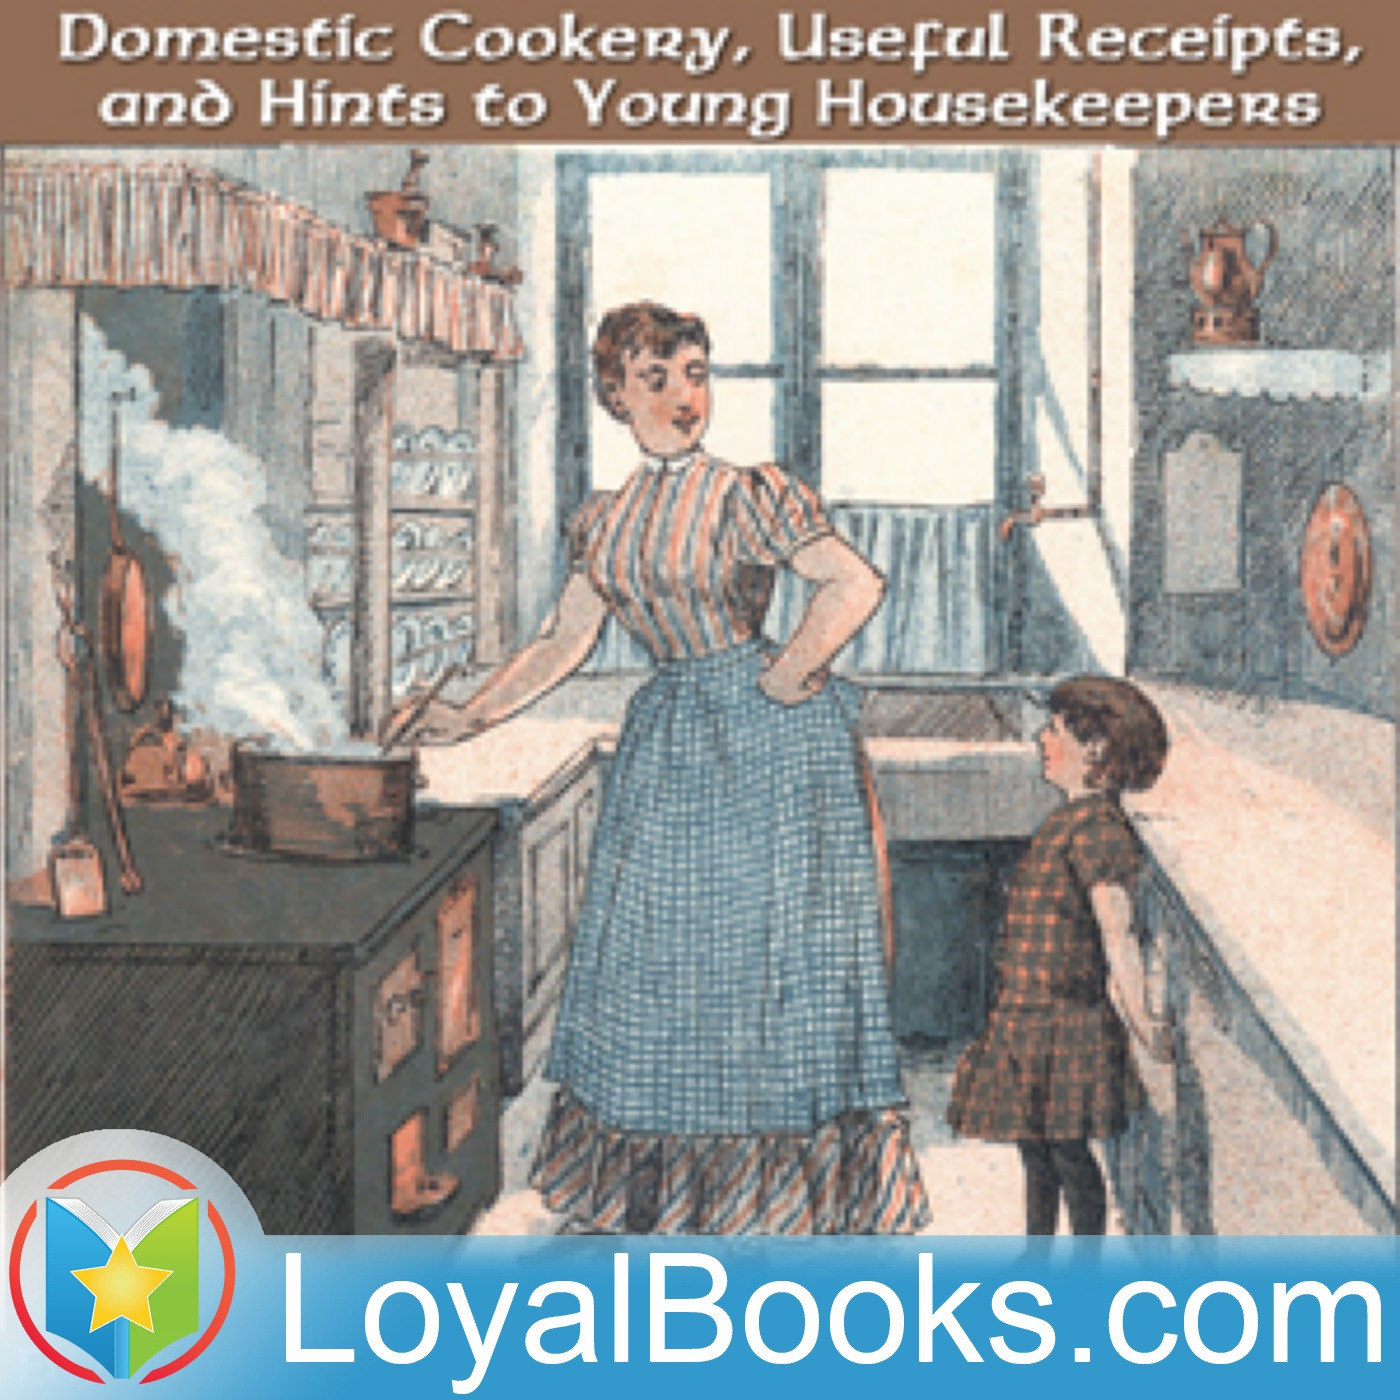 <![CDATA[Domestic Cookery, Useful Receipts, and Hints to Young Housekeepers by Elizabeth E. Lea]]>